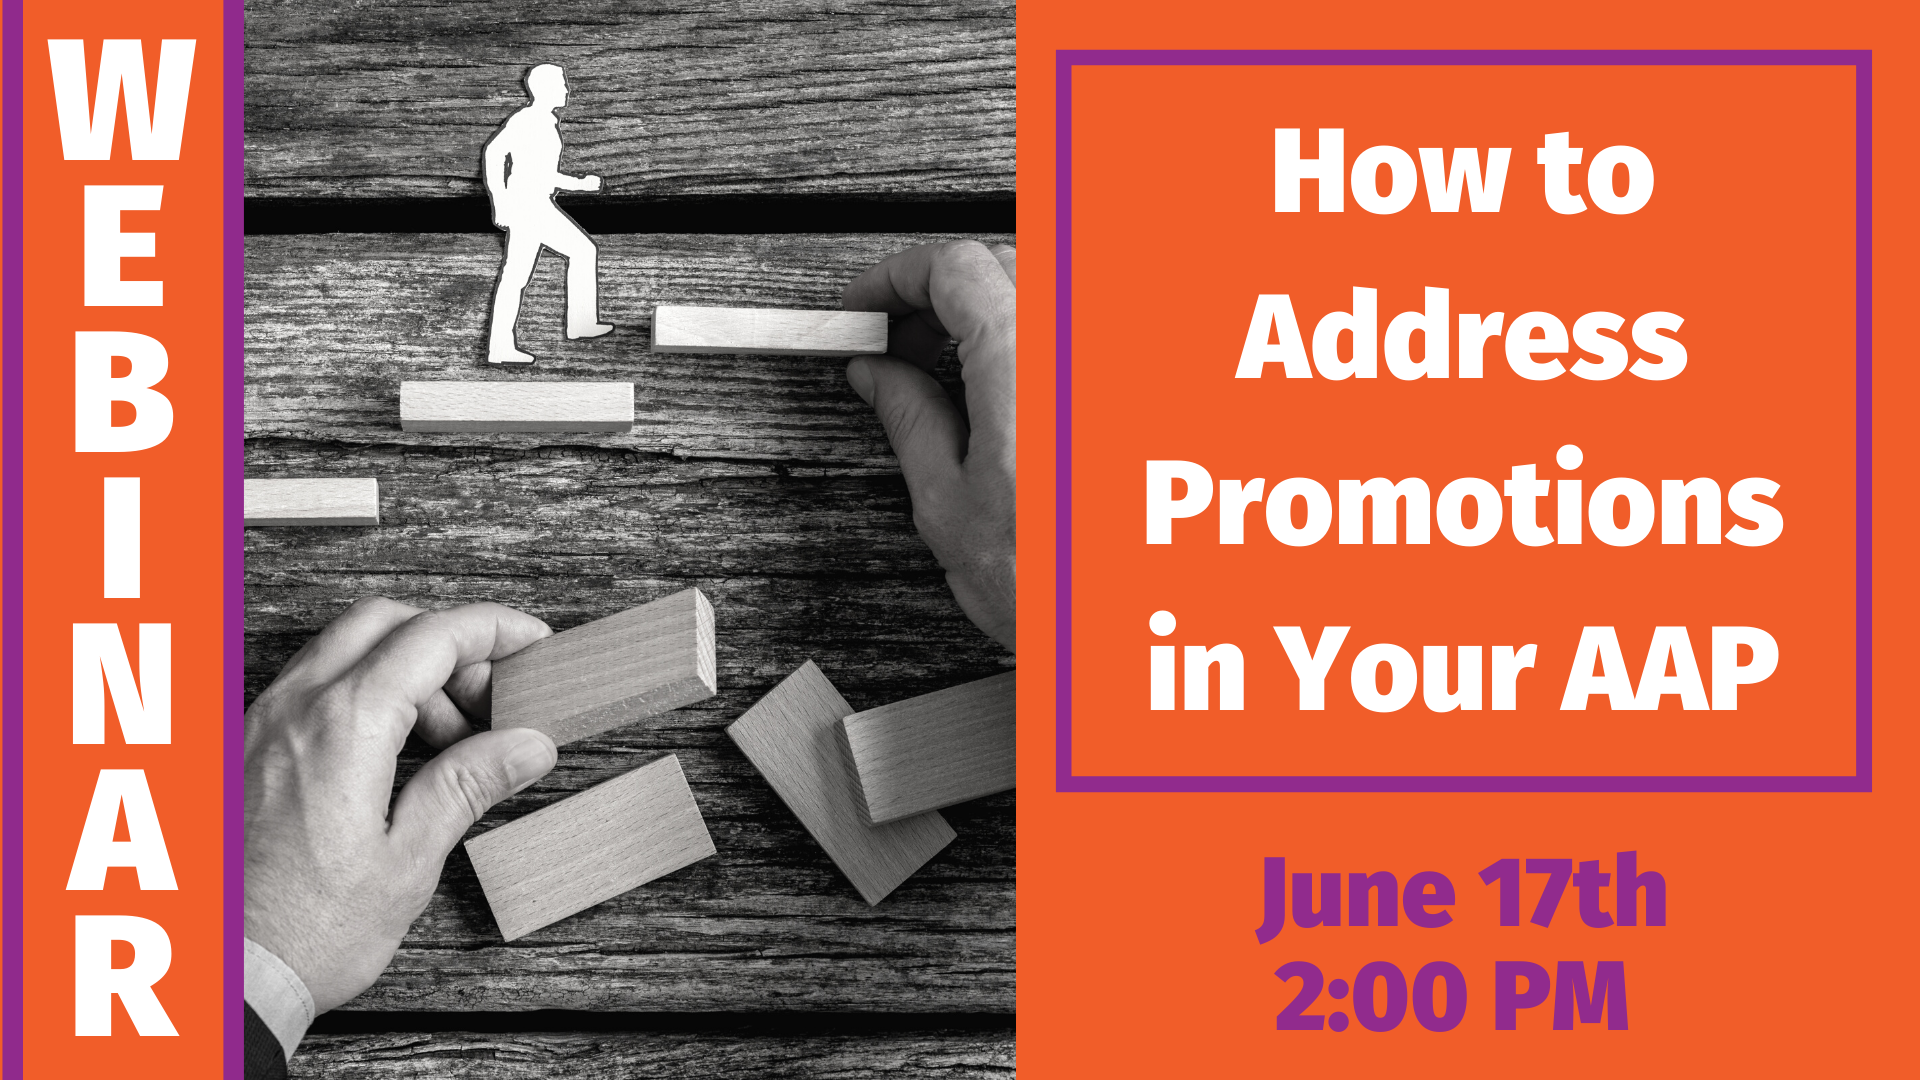 How to Address Promotions in Your AAP